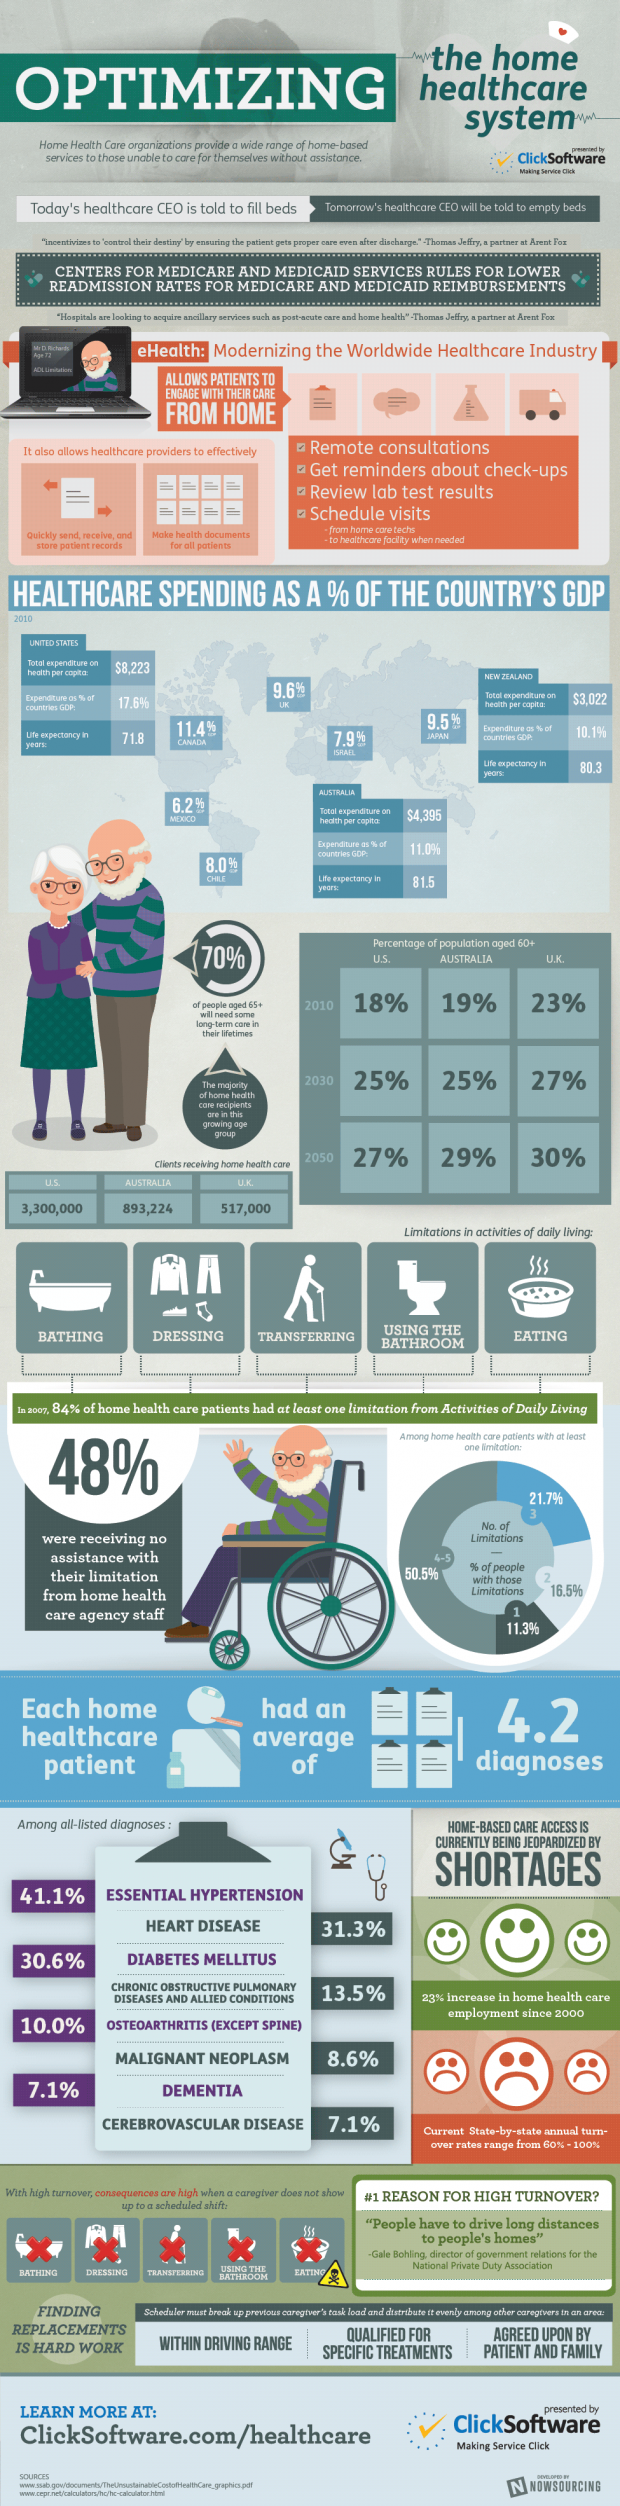 optimizing-the-home-healthcare-system-infographic